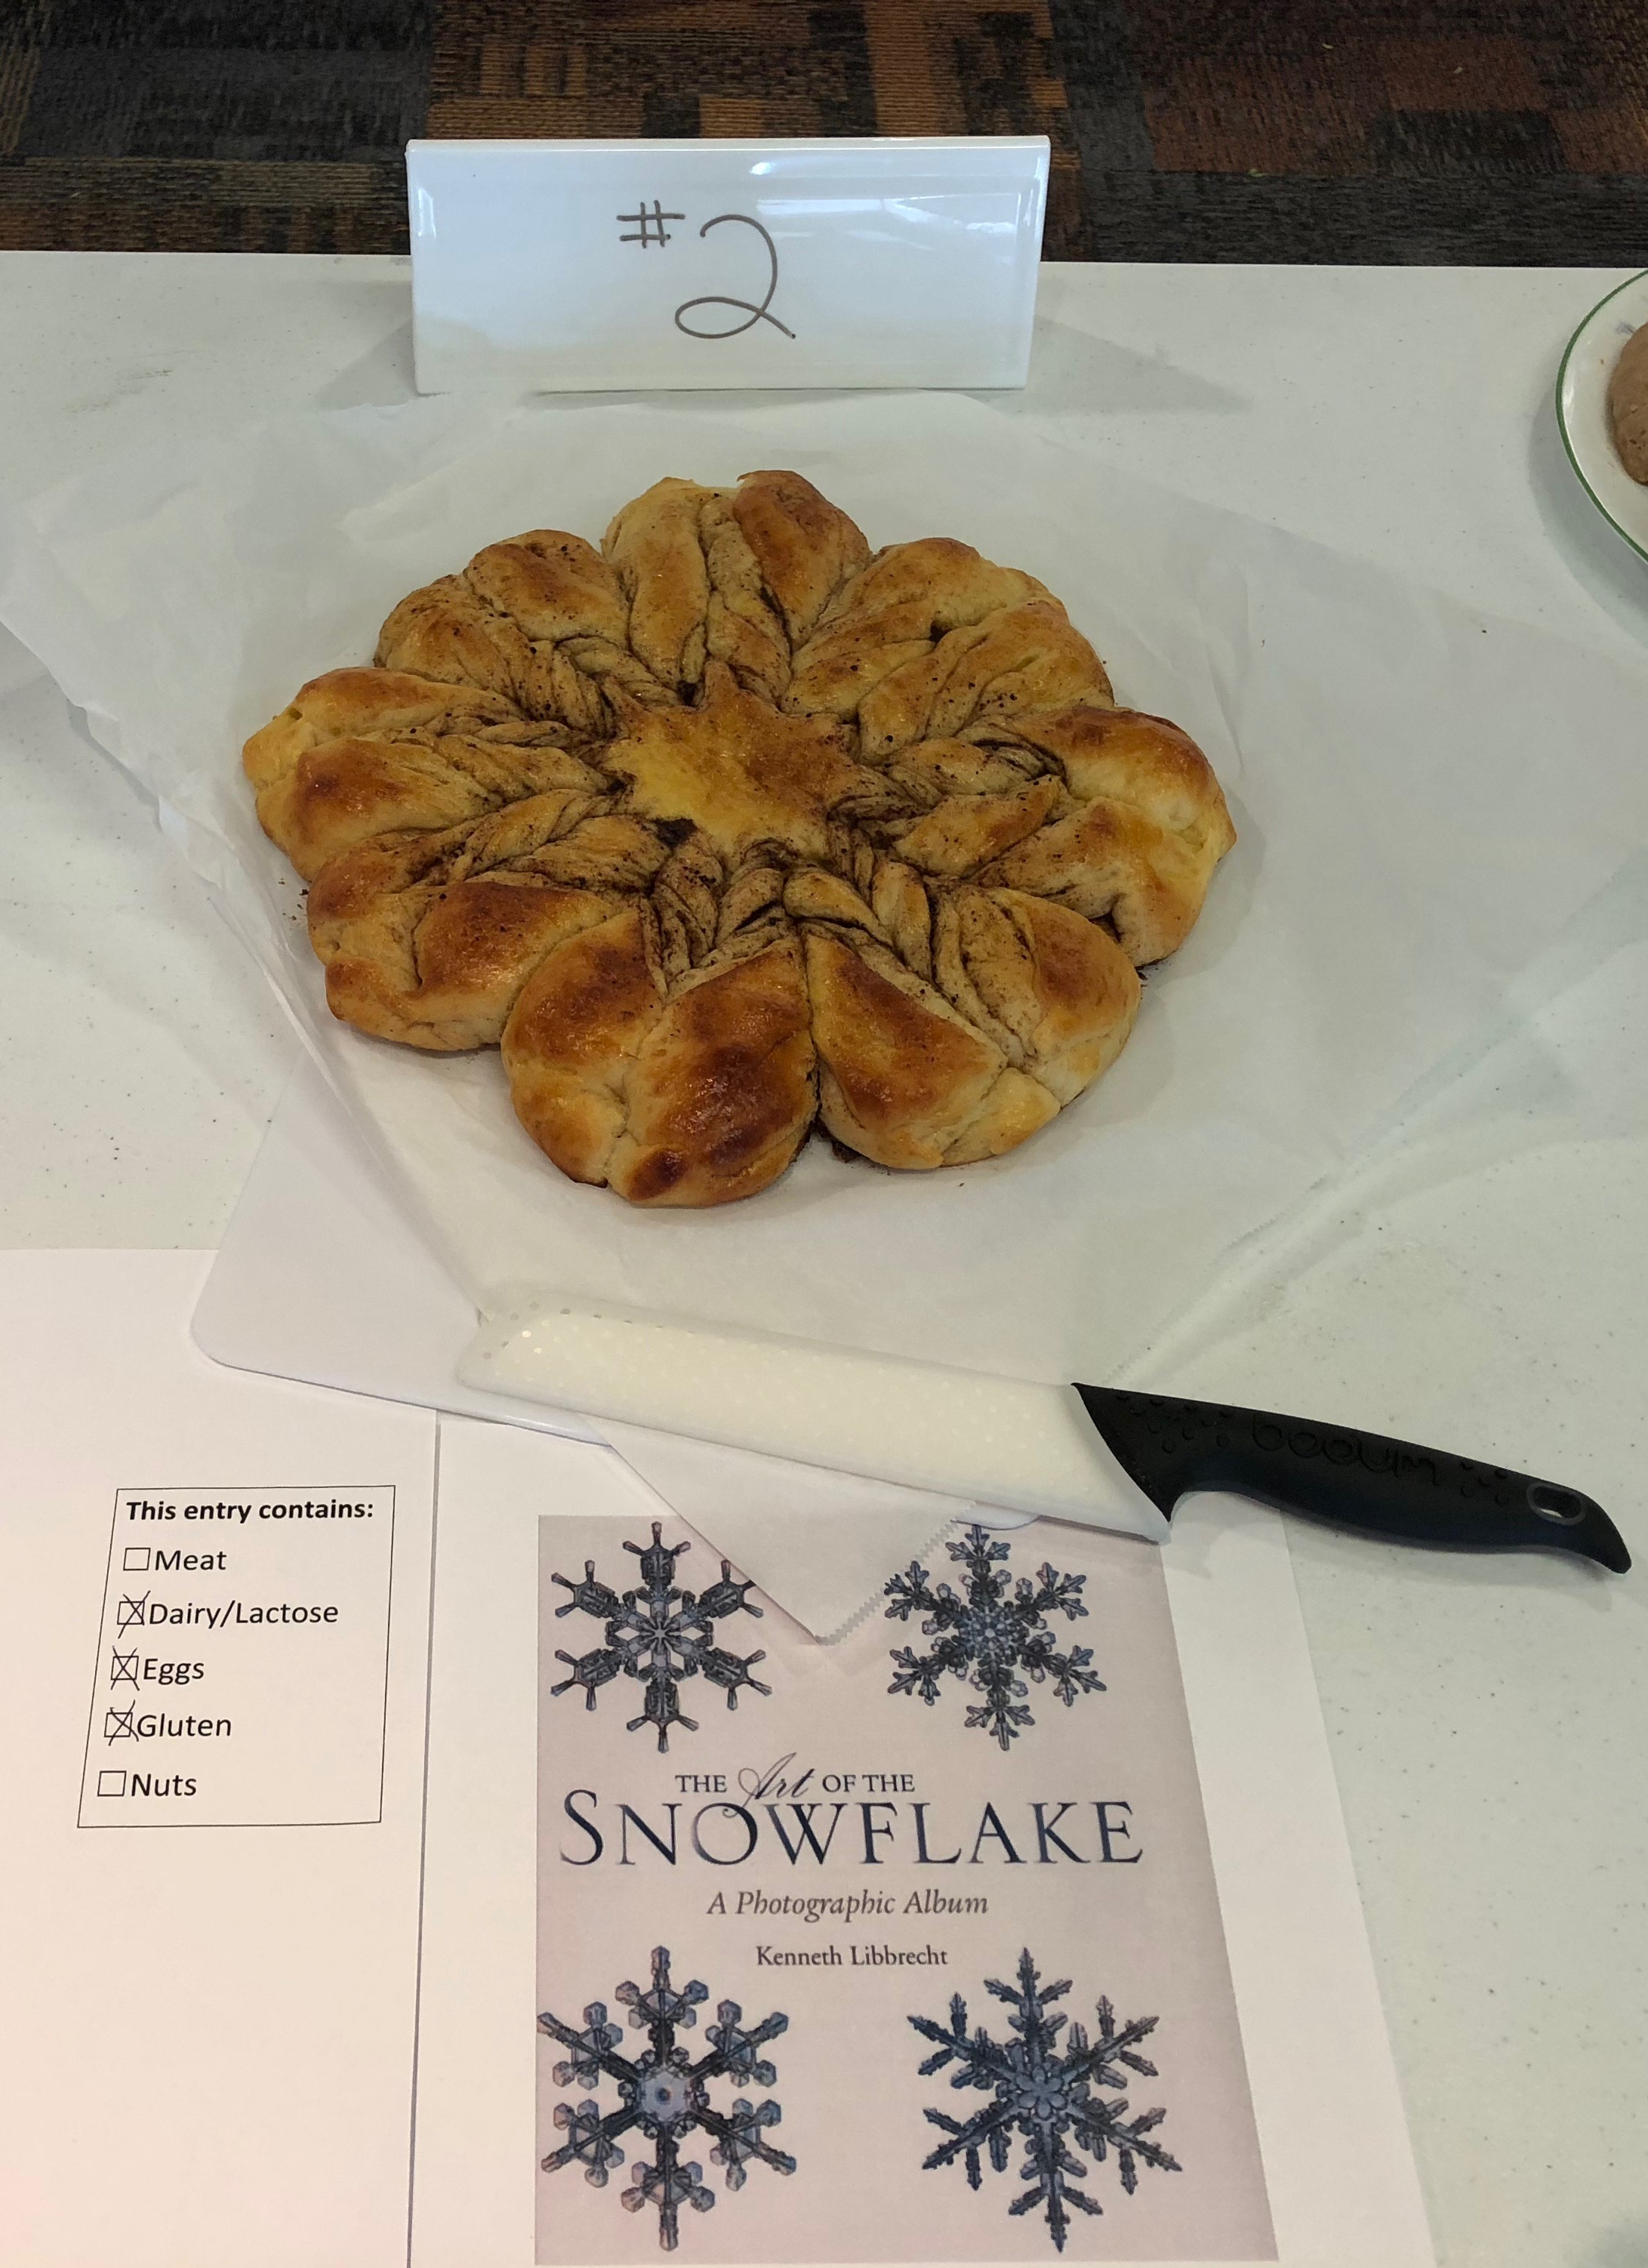 An intricately braided loaf of bread arranged to look like a snowflake, with swirls of cinnamon, cocoa, and sugar.